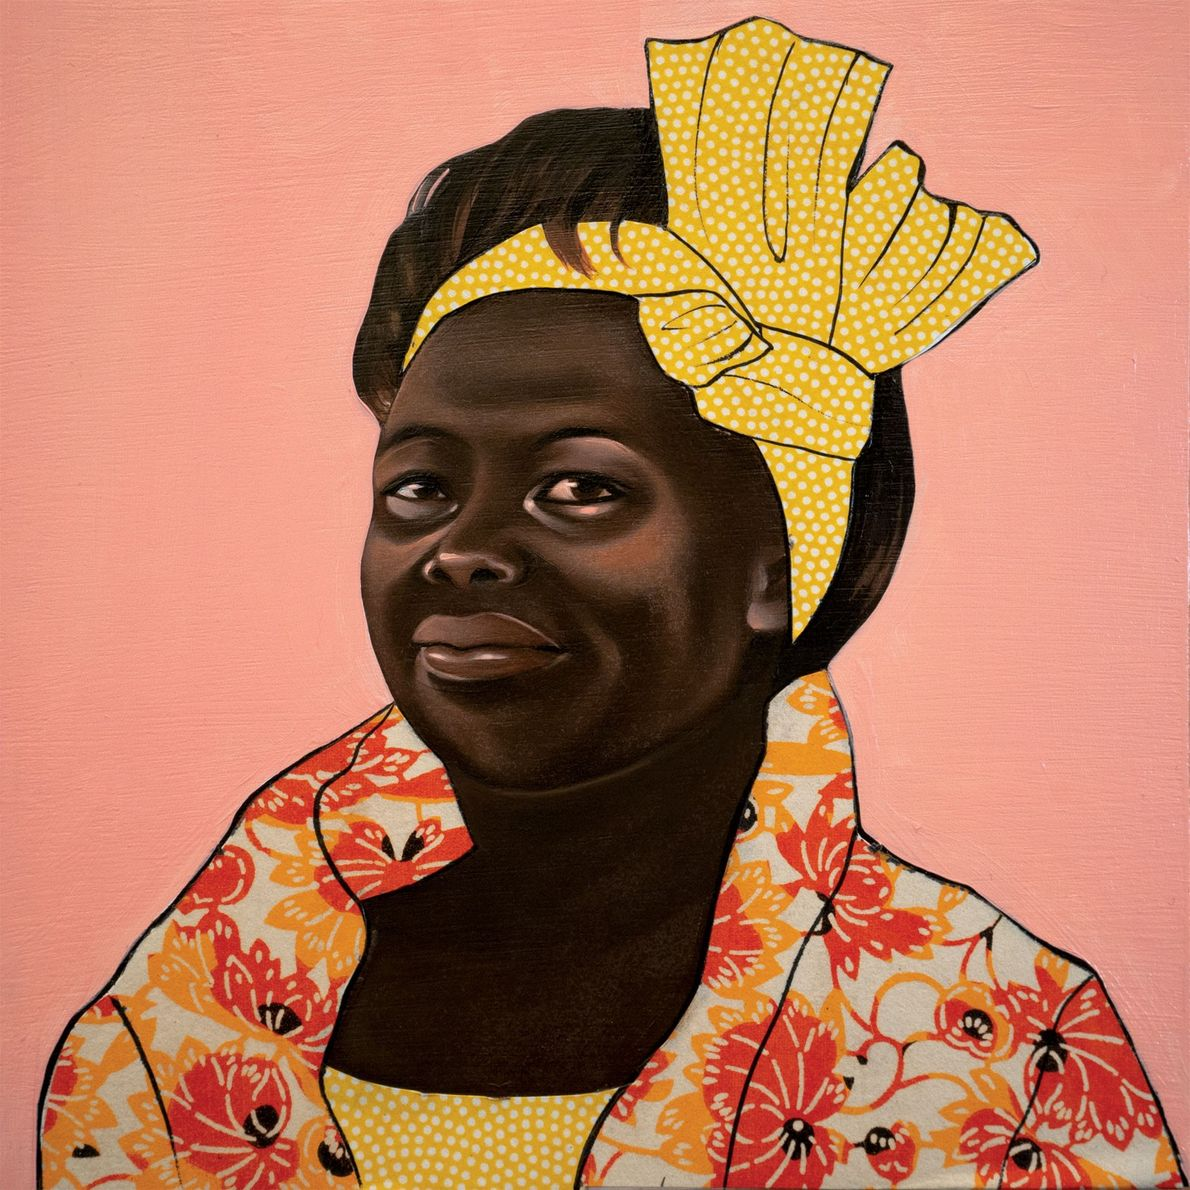 Wangari Maathai 1940-2011, Greening the Planet Born in rural Kenya, she was passionate about democracy, human rights, and ...